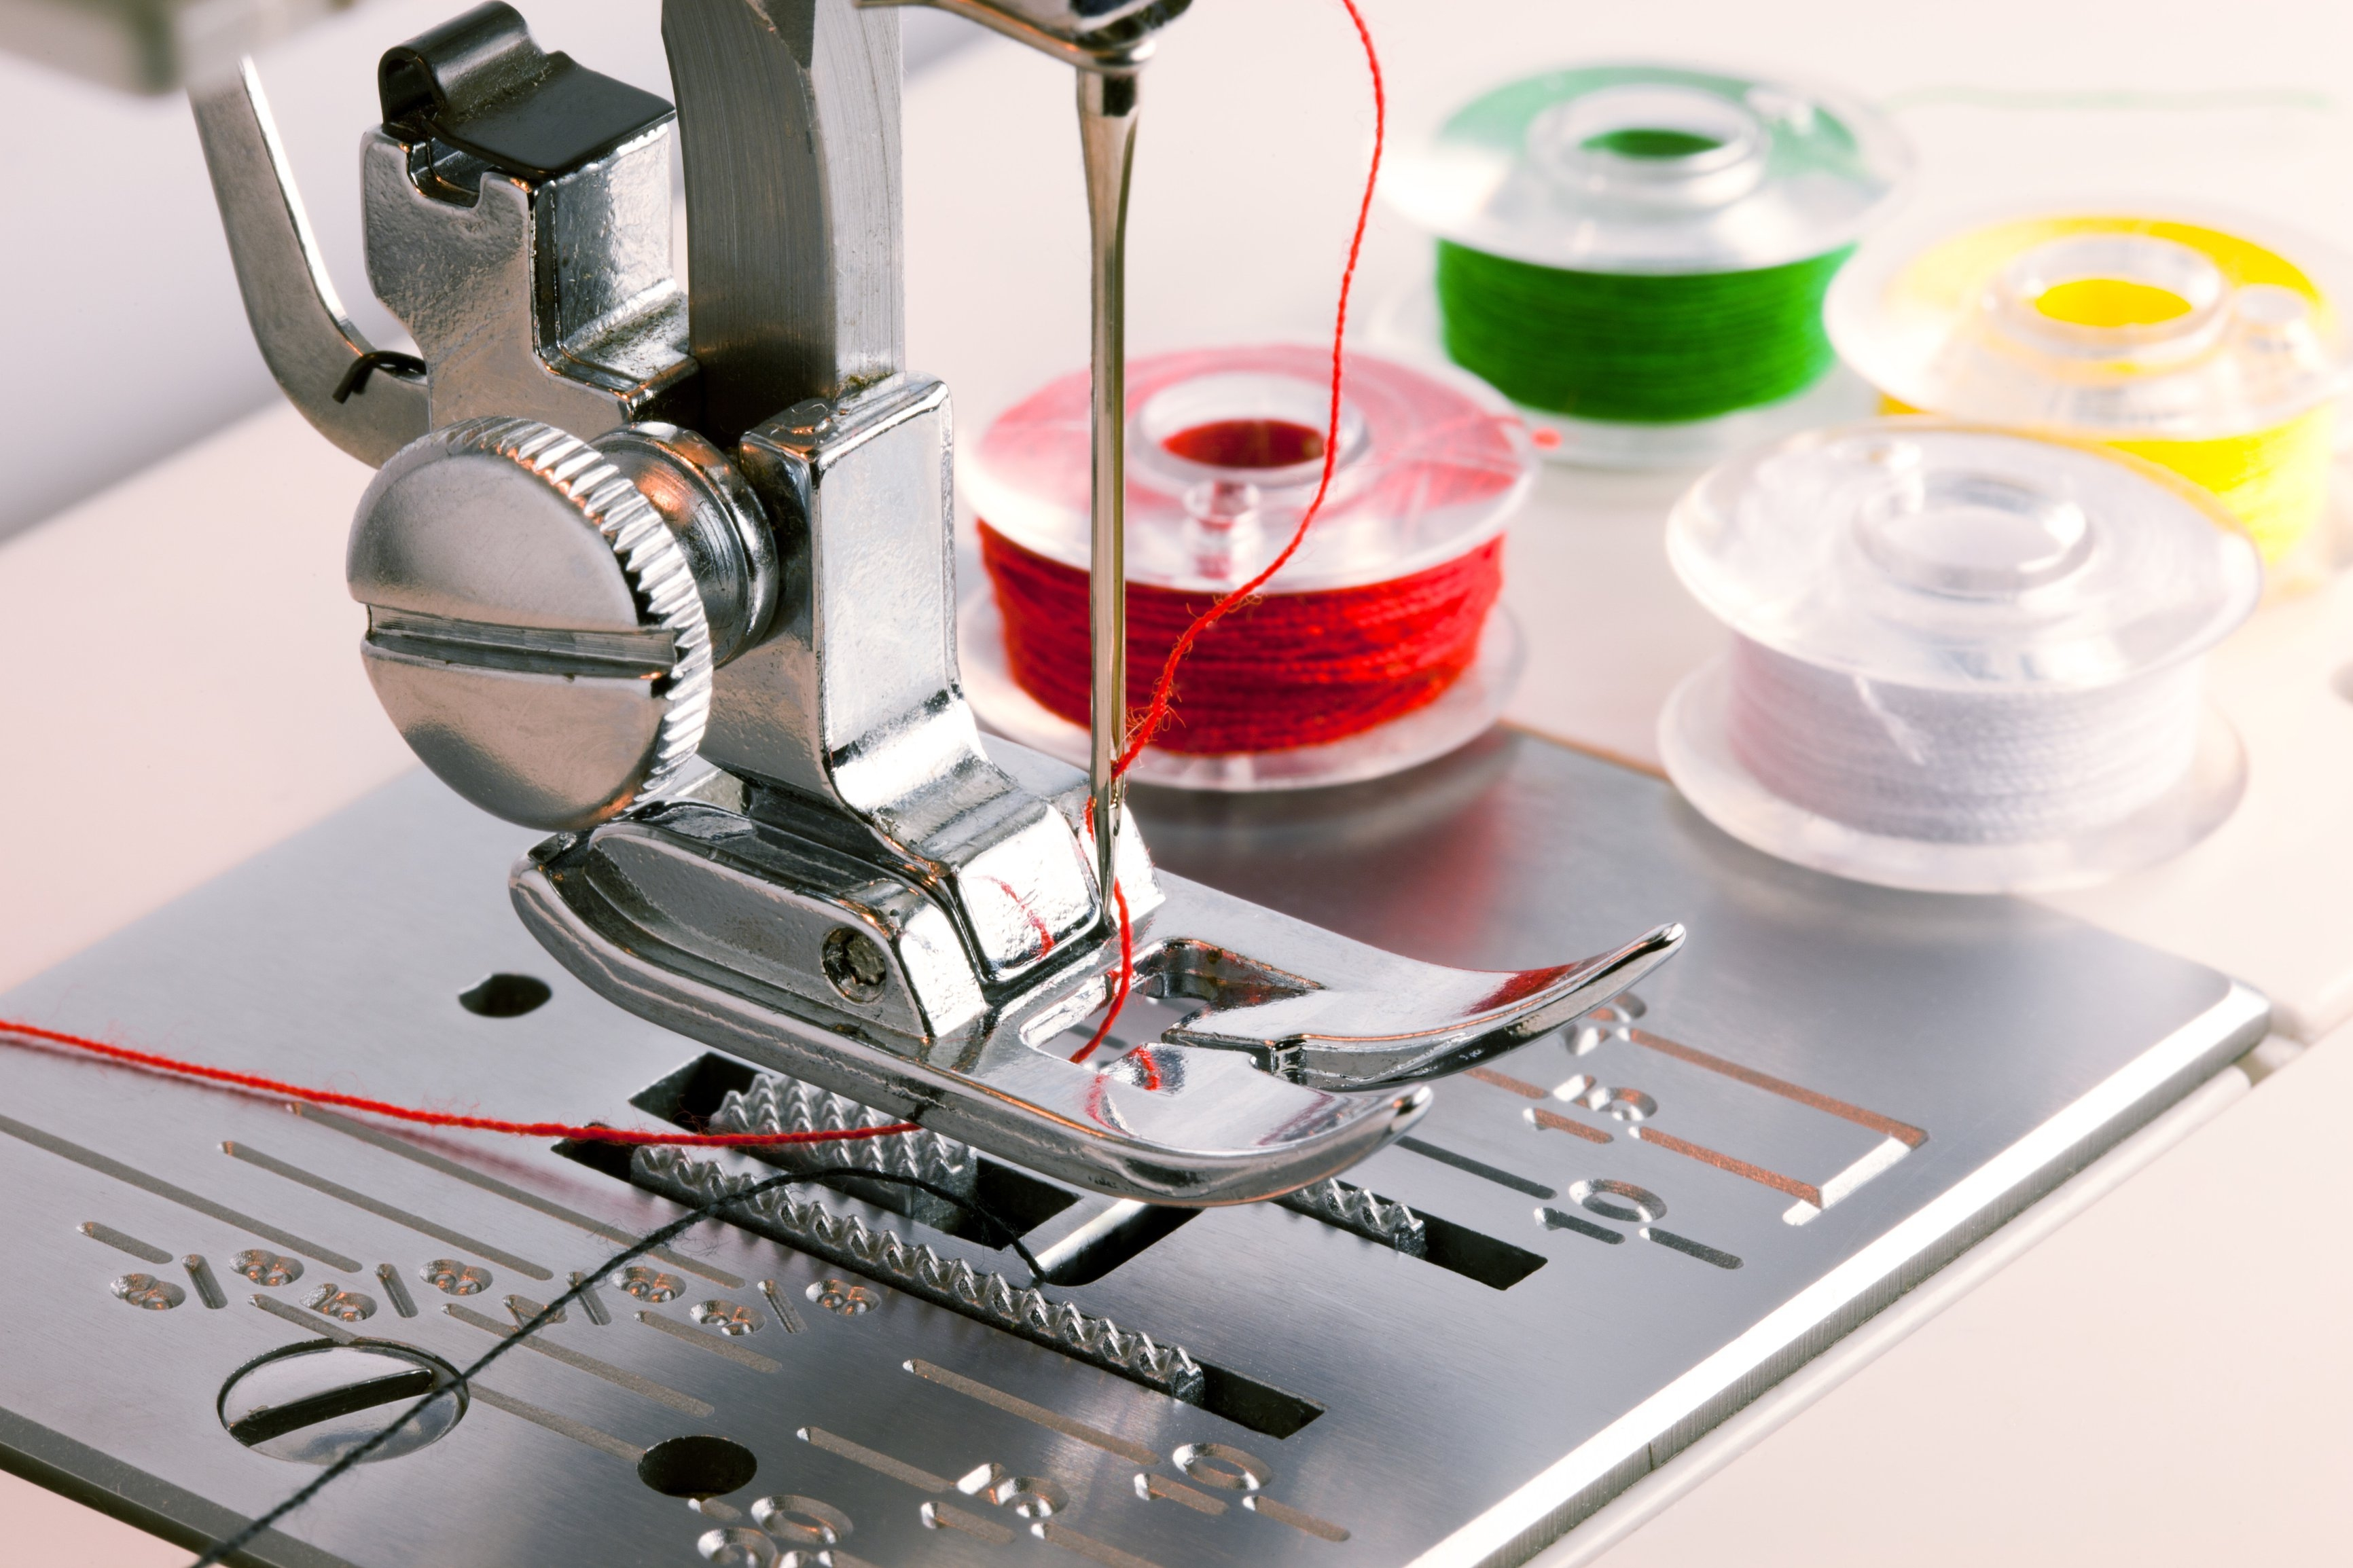 Sewing Machine Day Days Of The Year